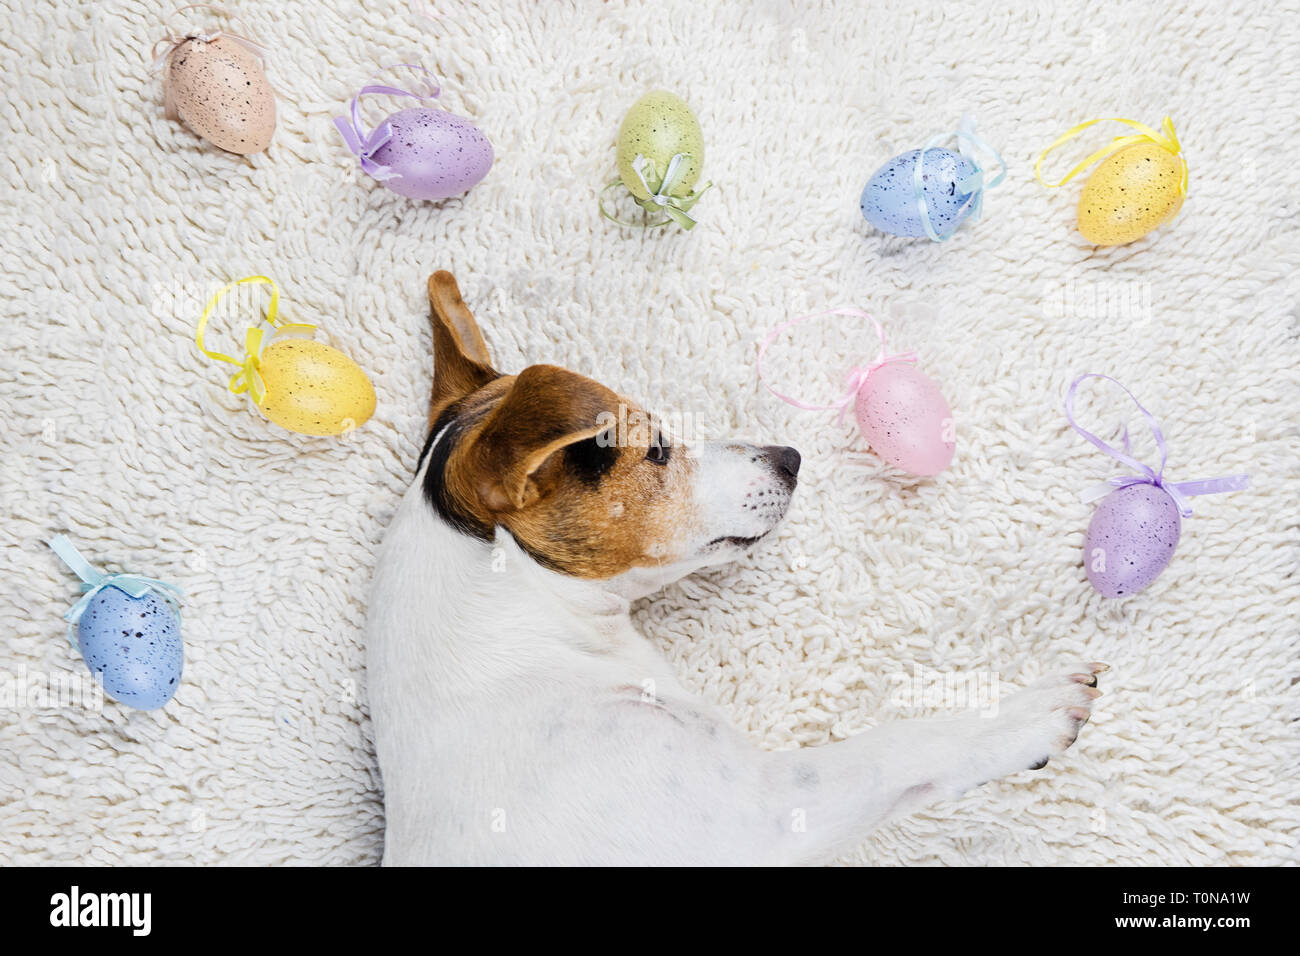 Cute puppy dog lying back on white rug with Easter painted eggs. Happy Easter Eggs Hunt concept greeting card, above view - Stock Image